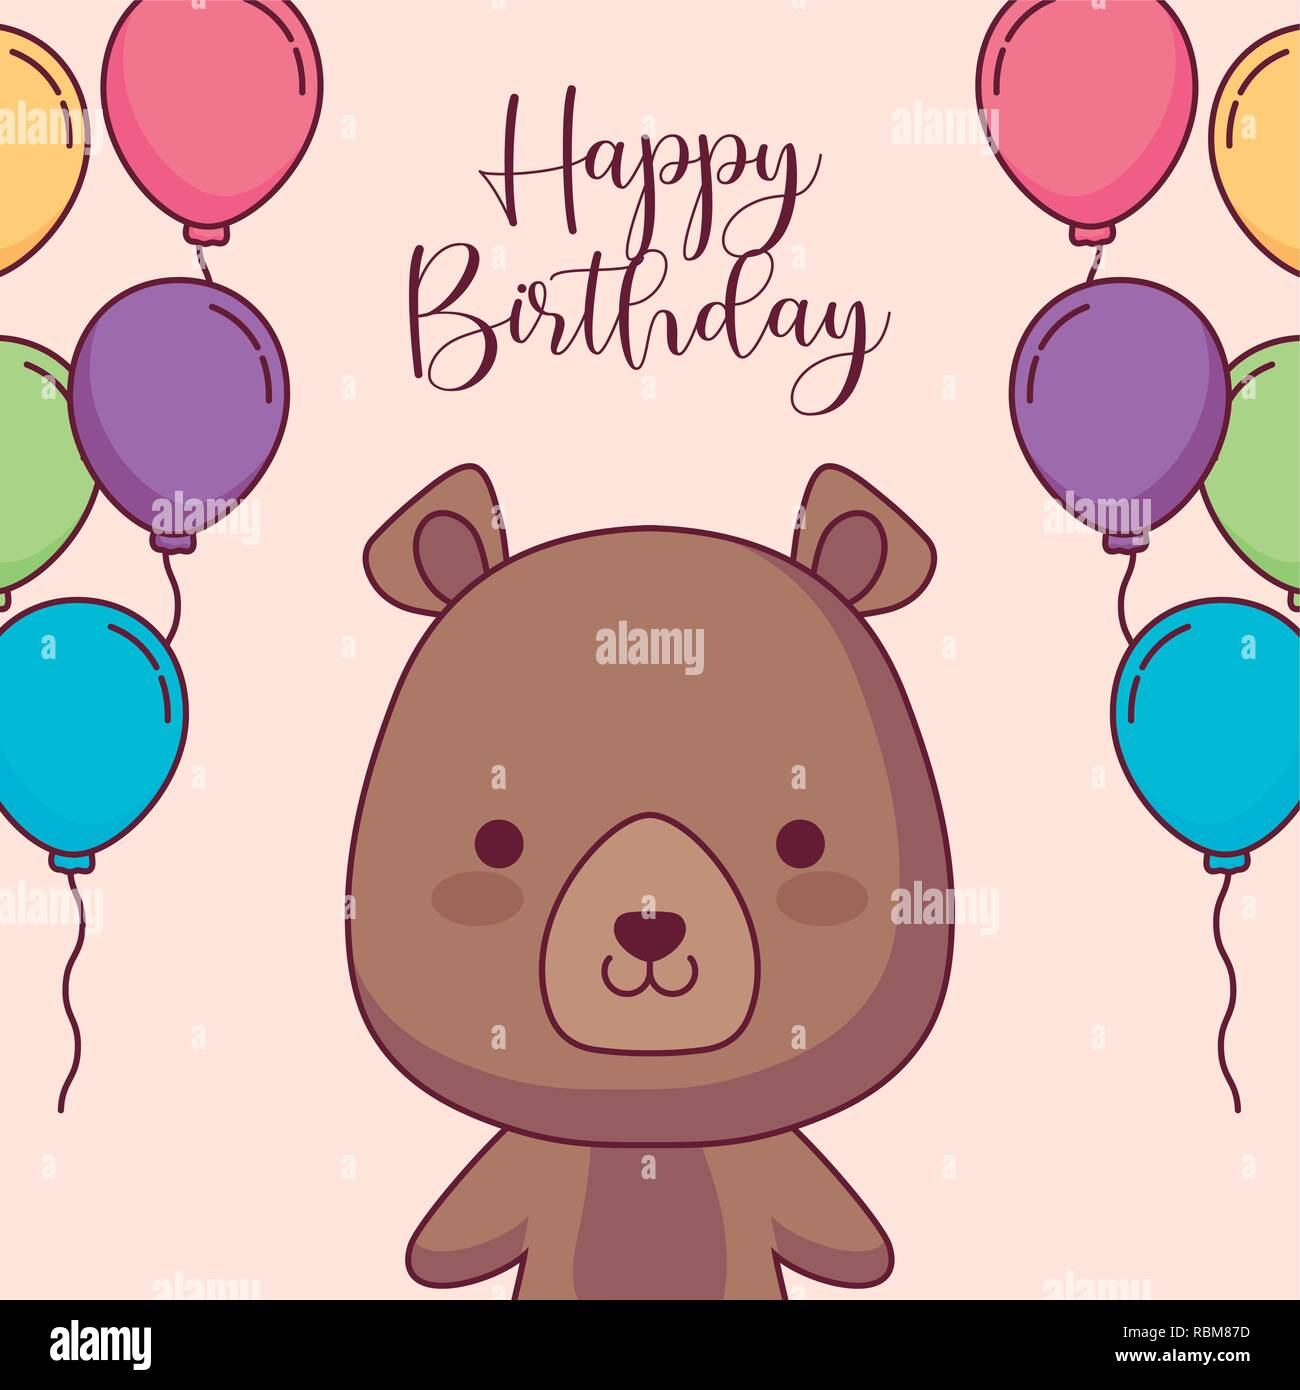 Cute Bear Teddy Happy Birthday Card Vector Illustration Design